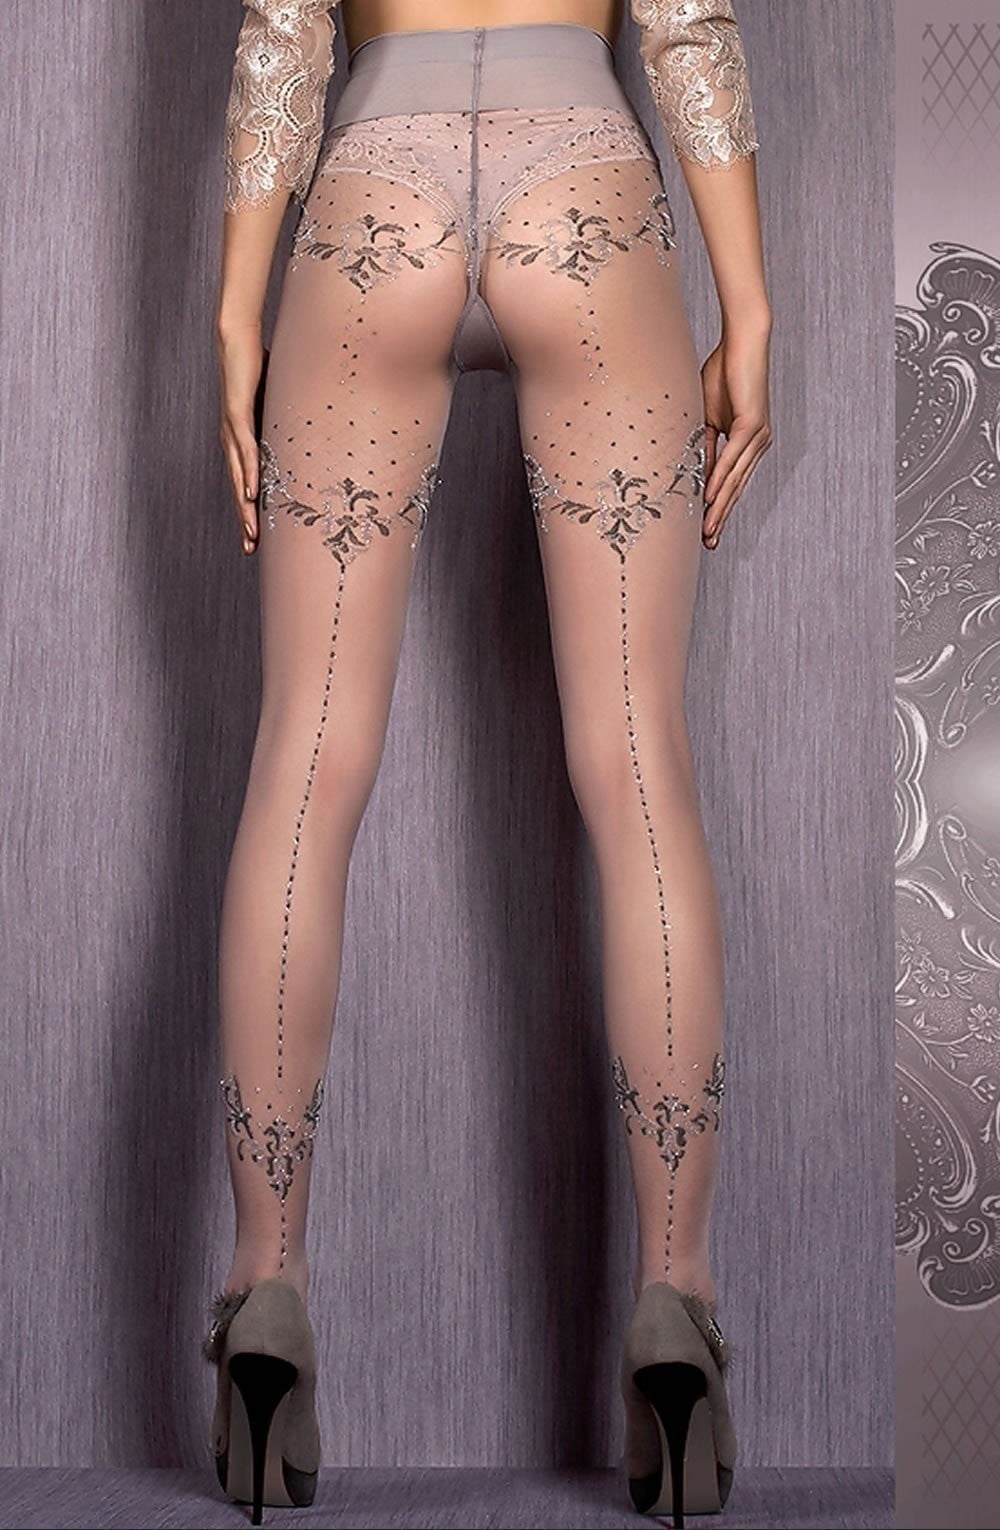 Ballerina Tights 413 (Grey) - Tights - Ballerina - Charm and Lace Boutique